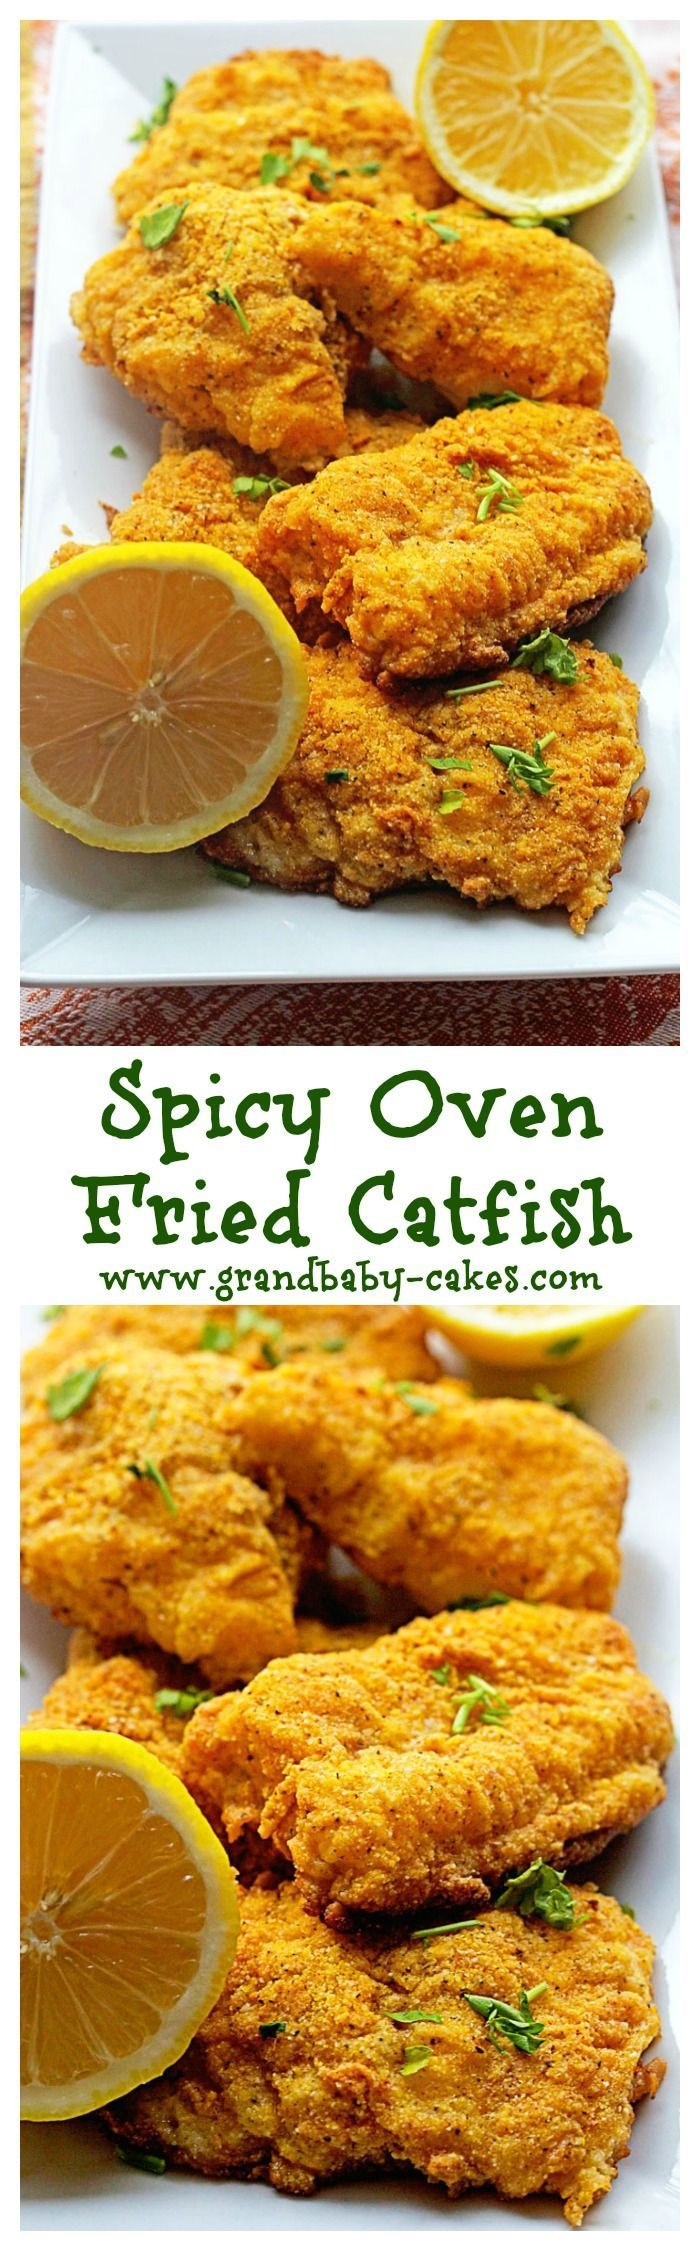 I've been inundated with Catfish recipes today so I thought I'd share some with you folks.